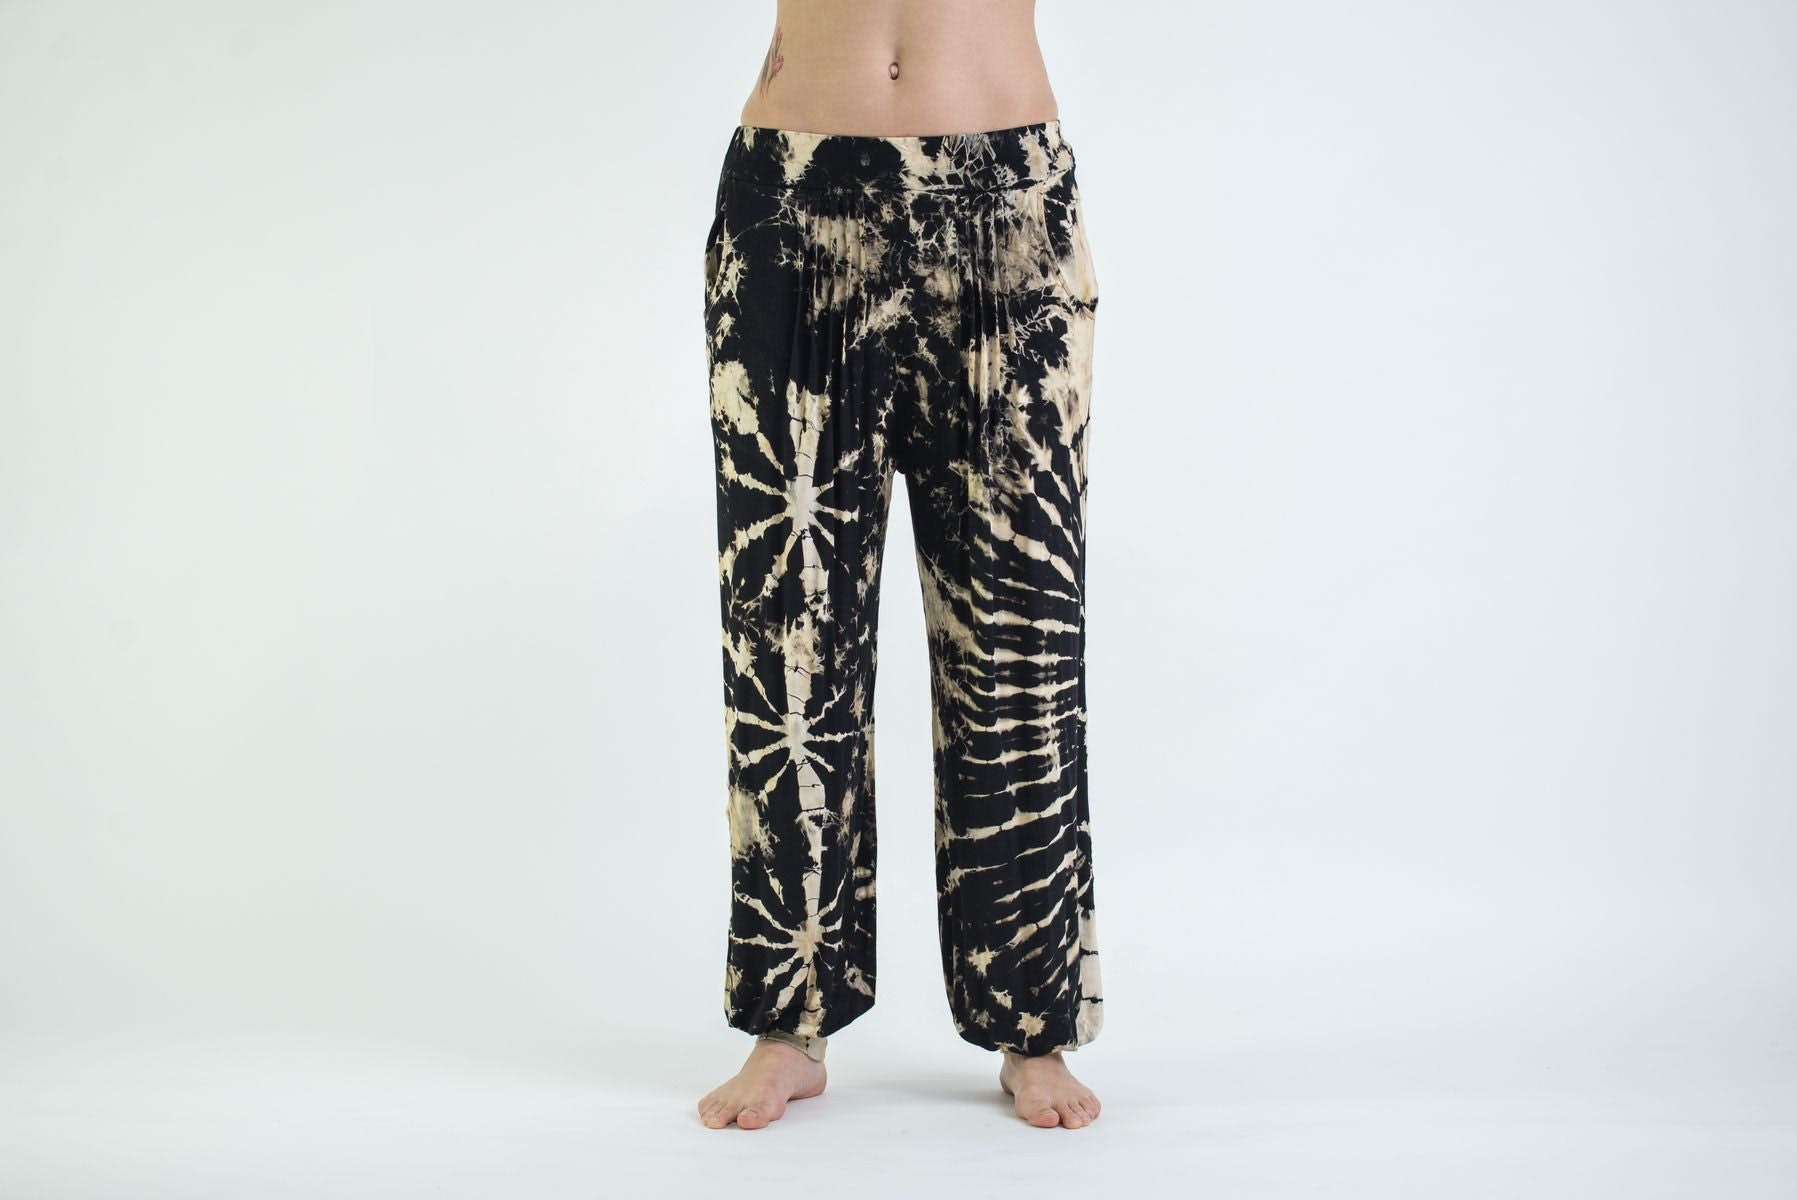 Luxury Tie Dye Cotton Women Harem Pants In Black And White